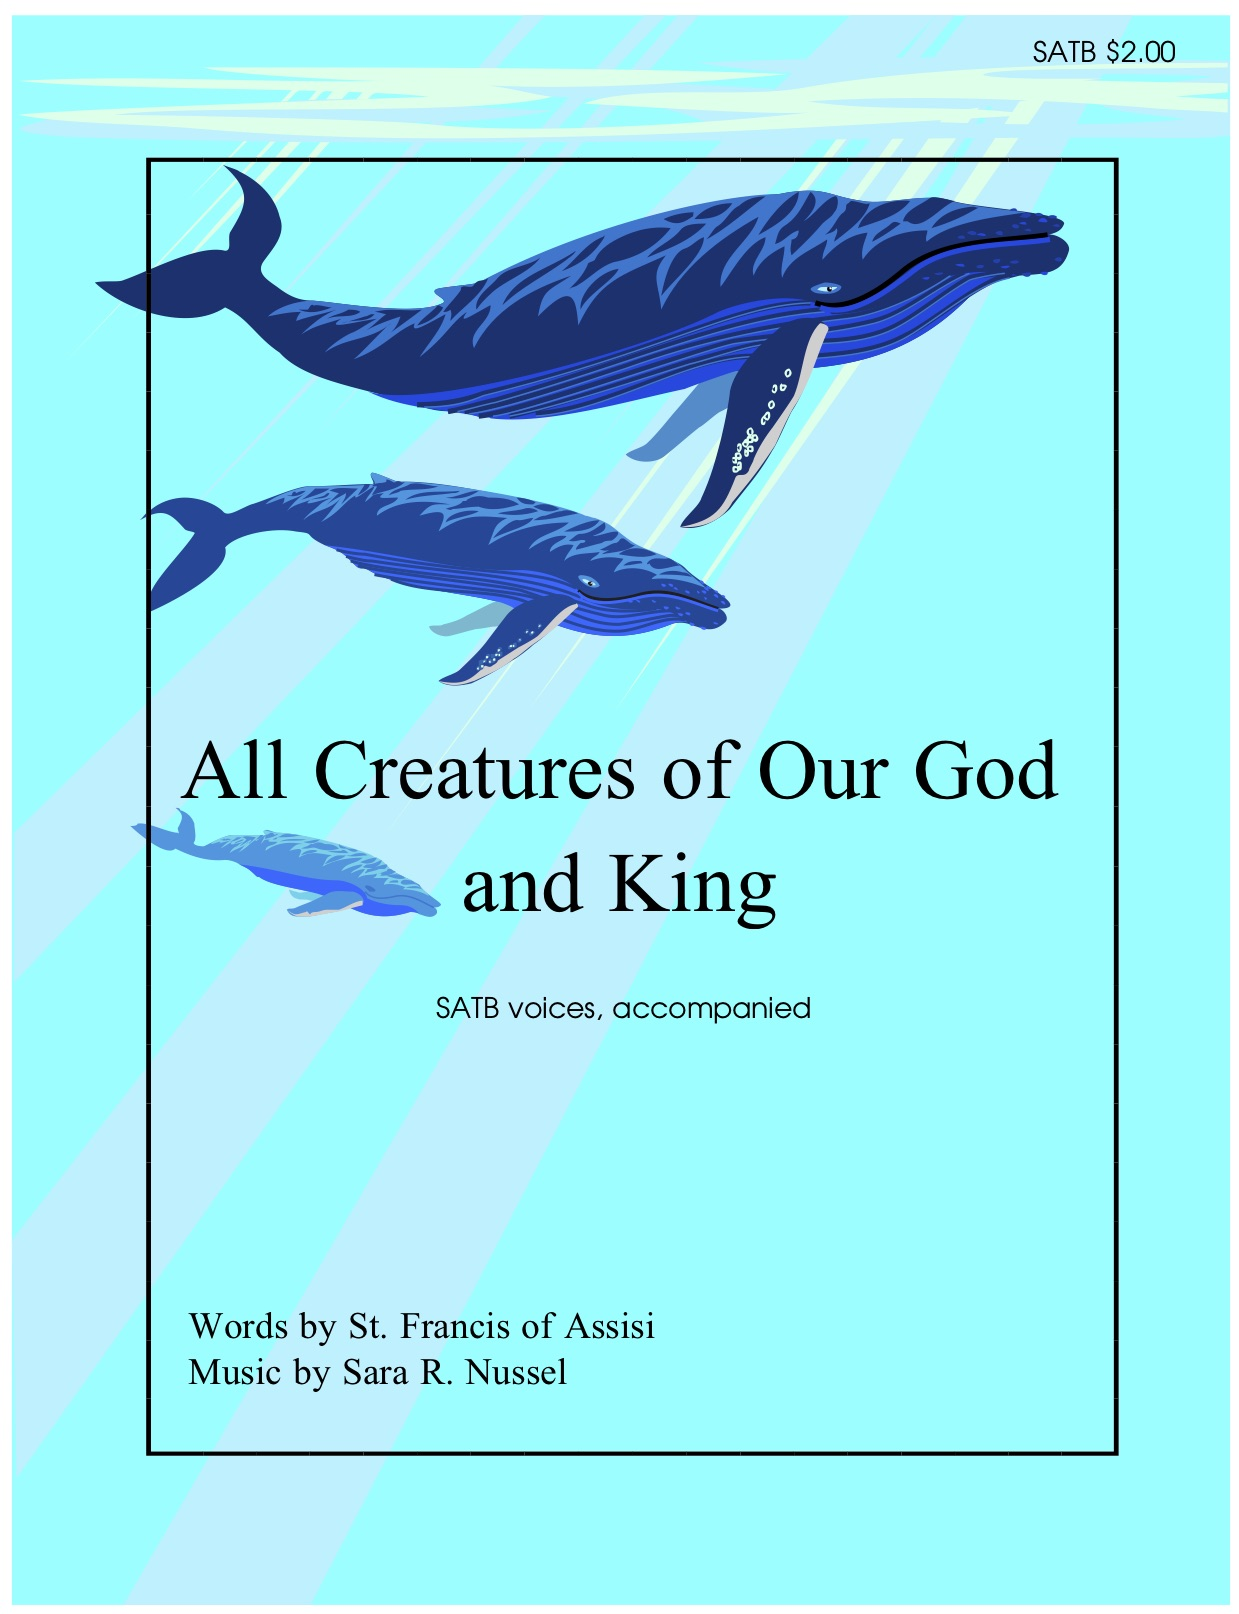 All Creatures of Our God and King.jpg